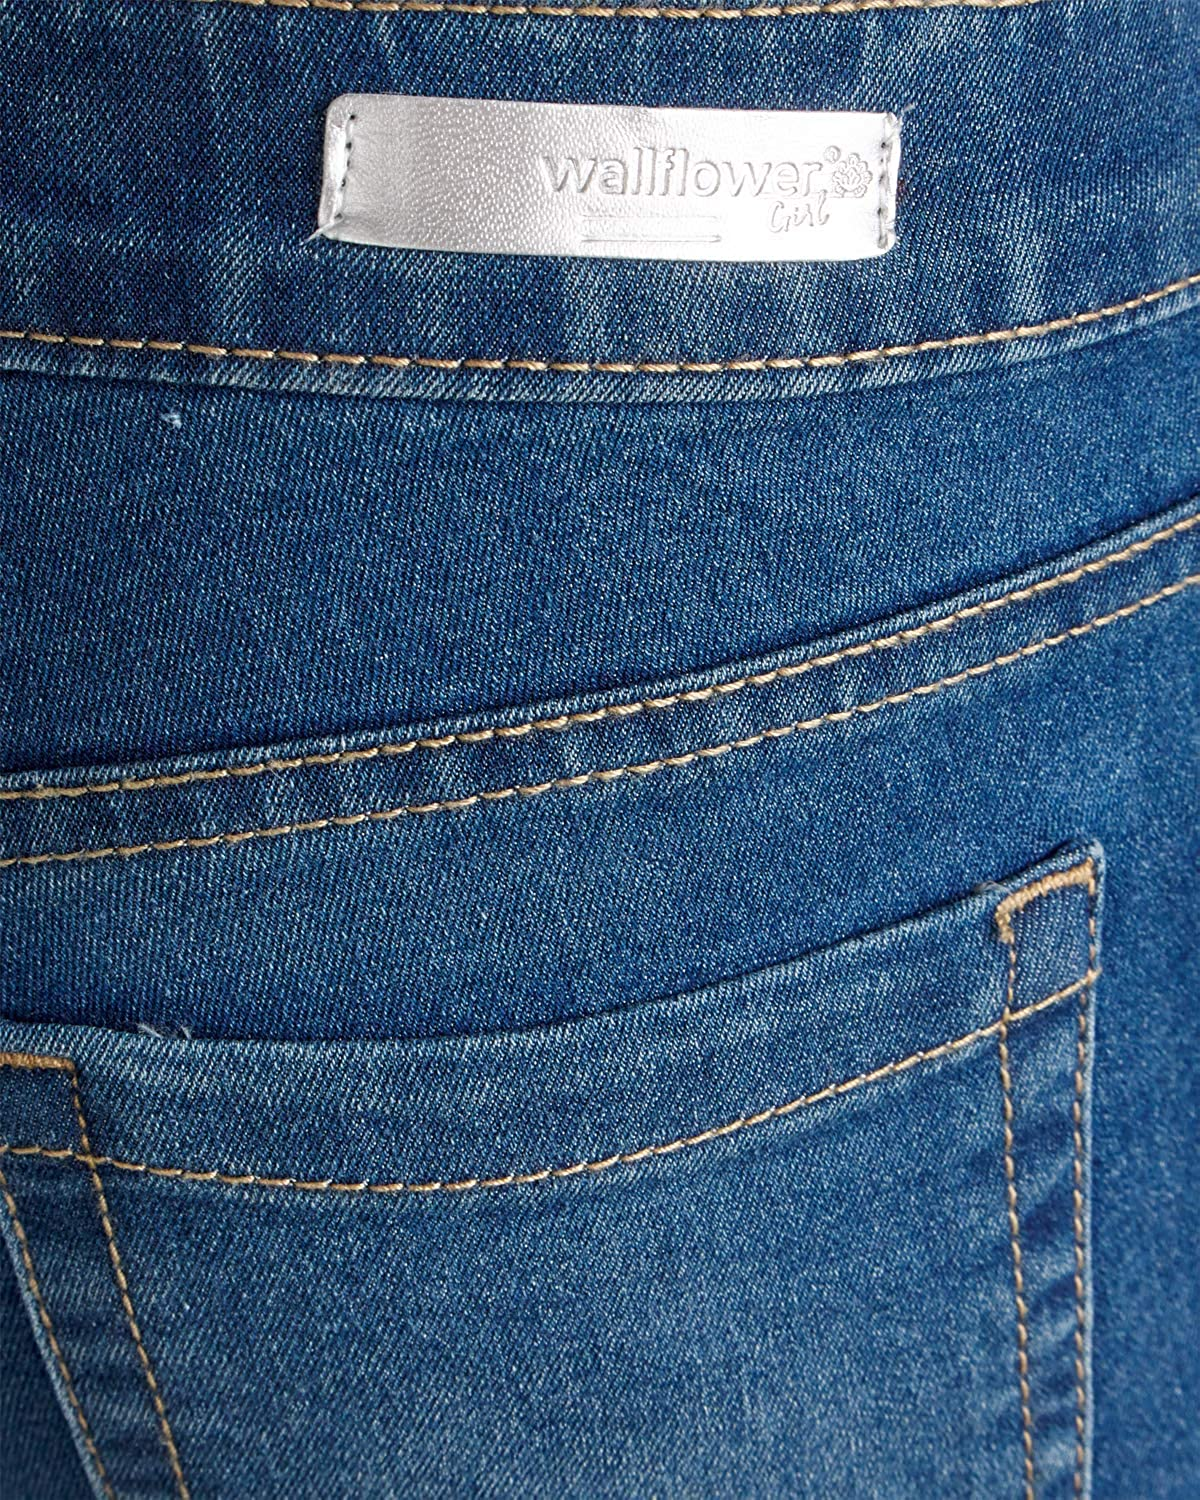 Amazon.com: Wallflower vaqueros Niñas Suave Denim Elástico ...